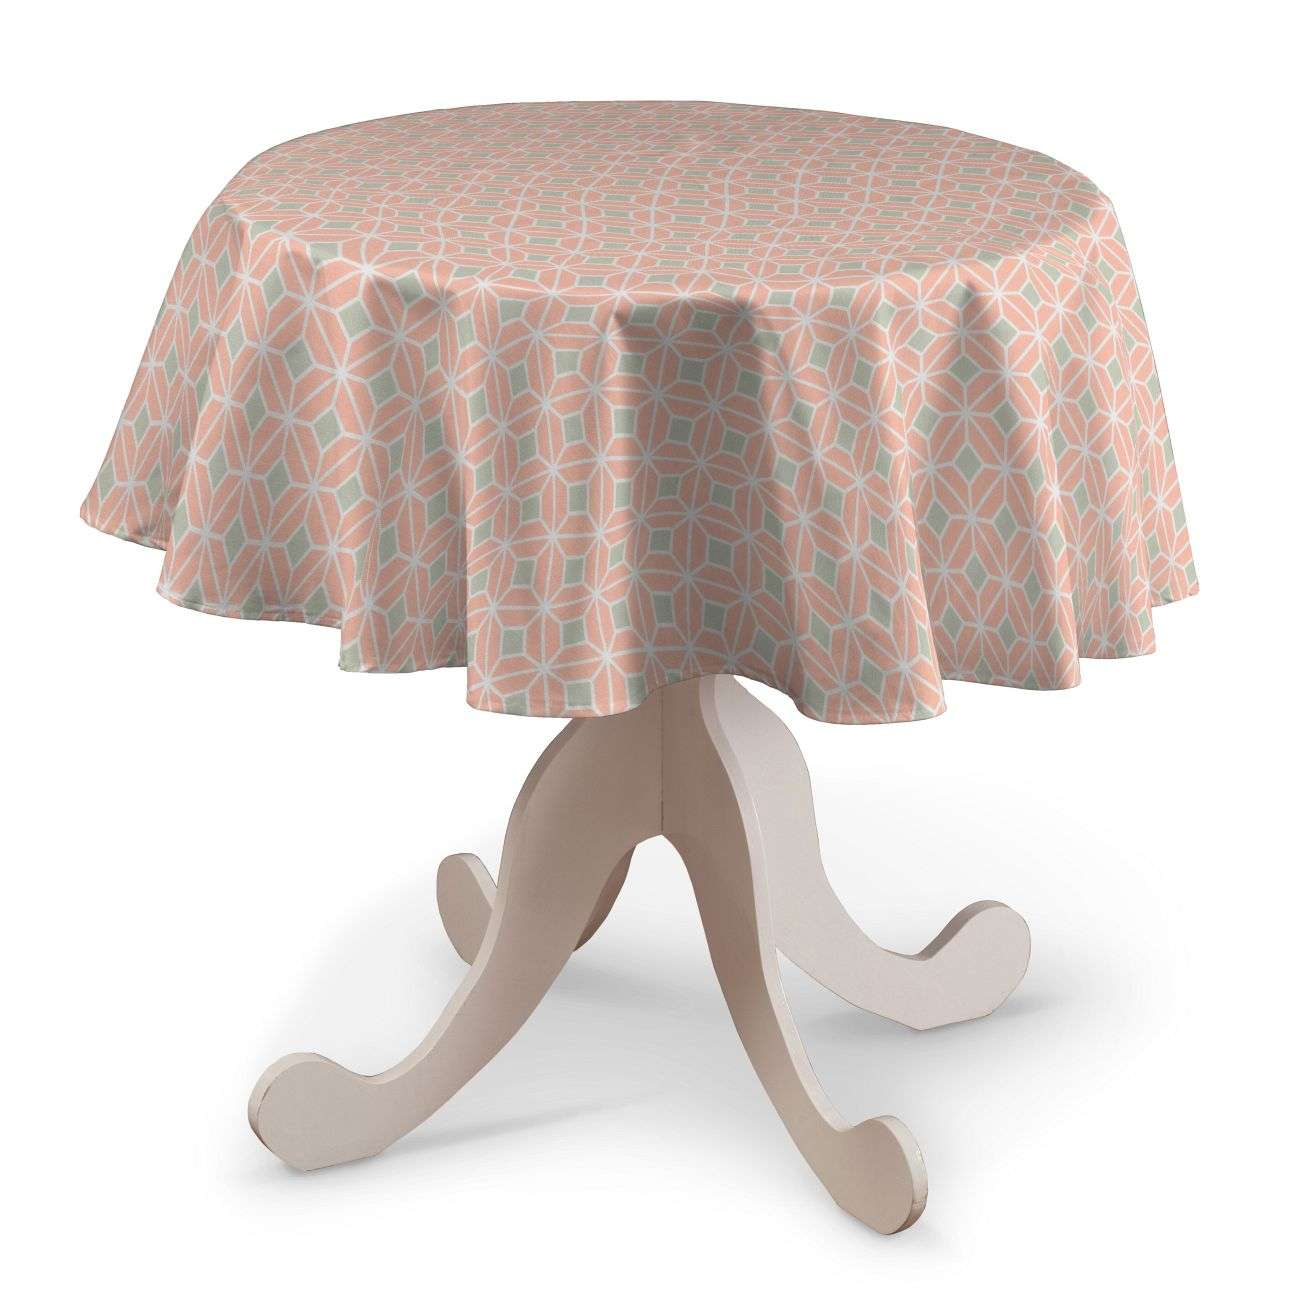 Round tablecloth Ø 135 cm (53 inch) in collection Geometric, fabric: 141-48